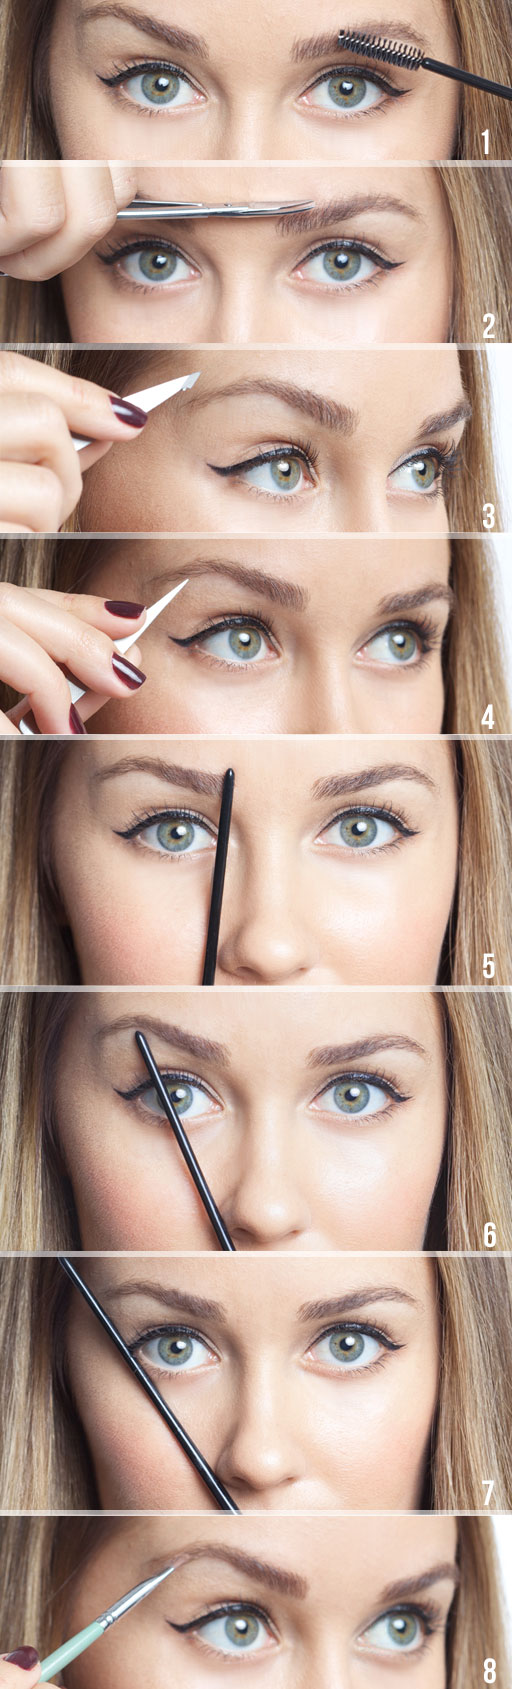 9731683fbff The Beauty Department: Your Daily Dose of Pretty. - BROWS 101